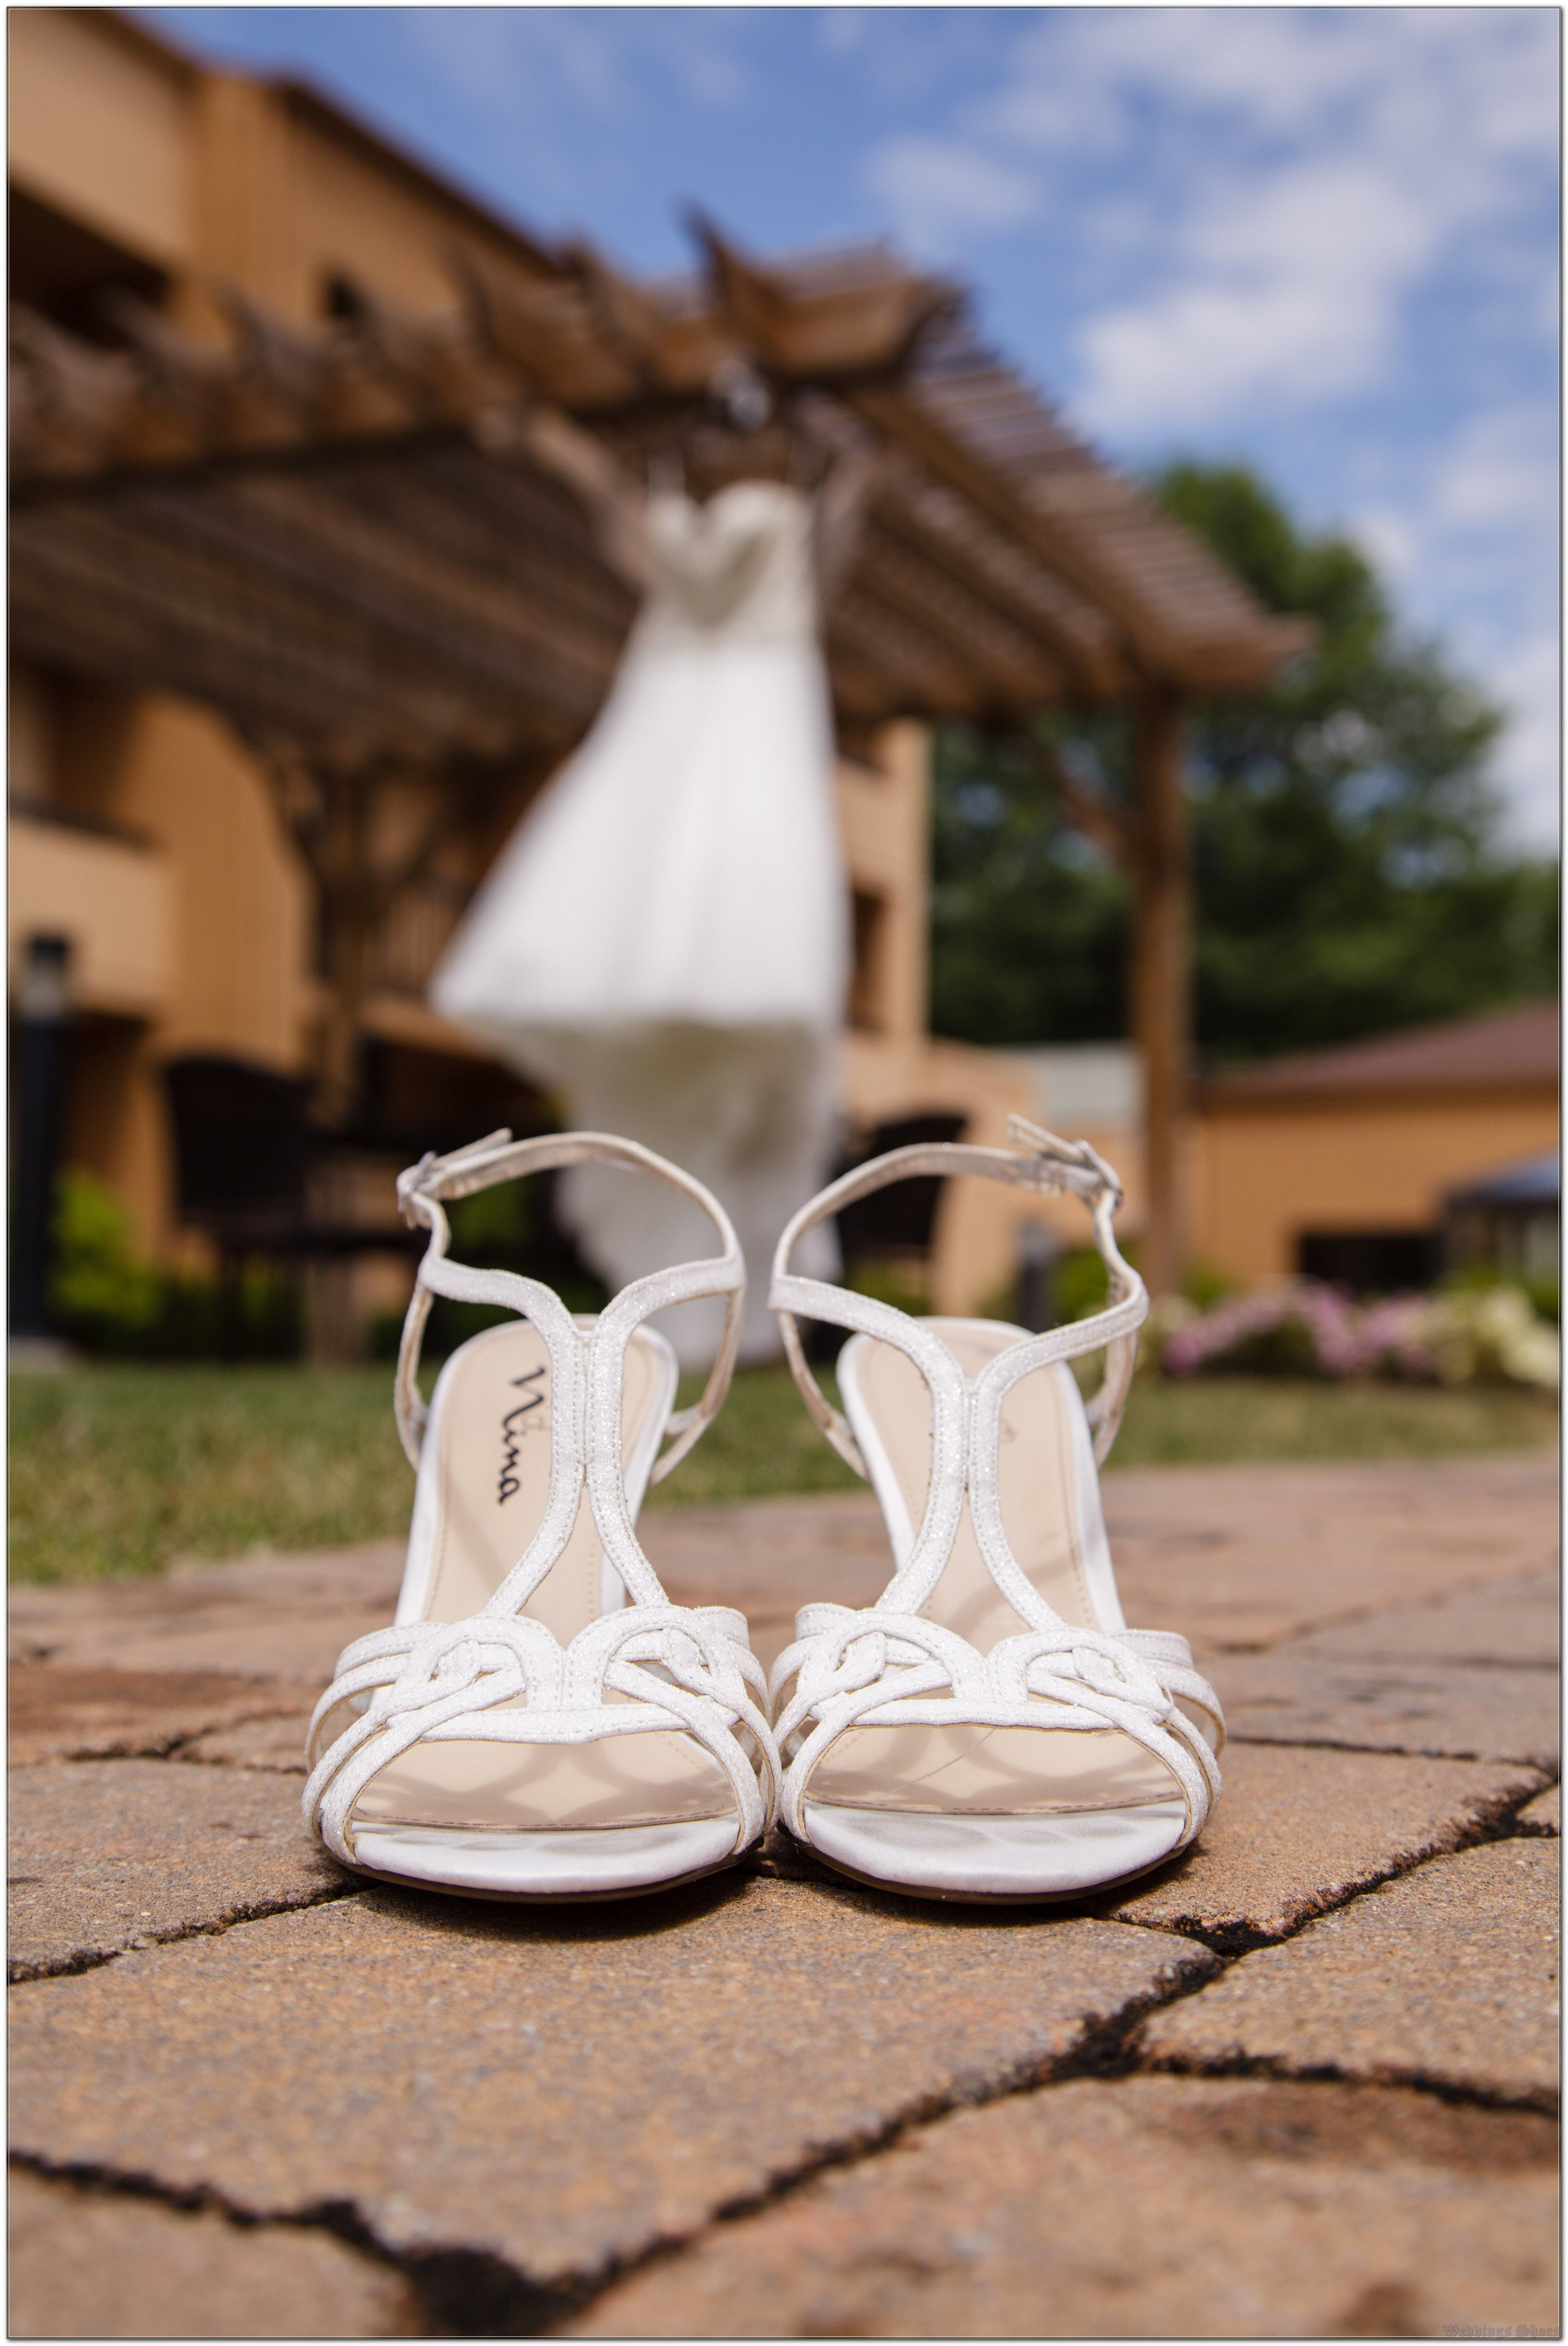 3 Mistakes In Wedding Shoes That Make You Look Dumb